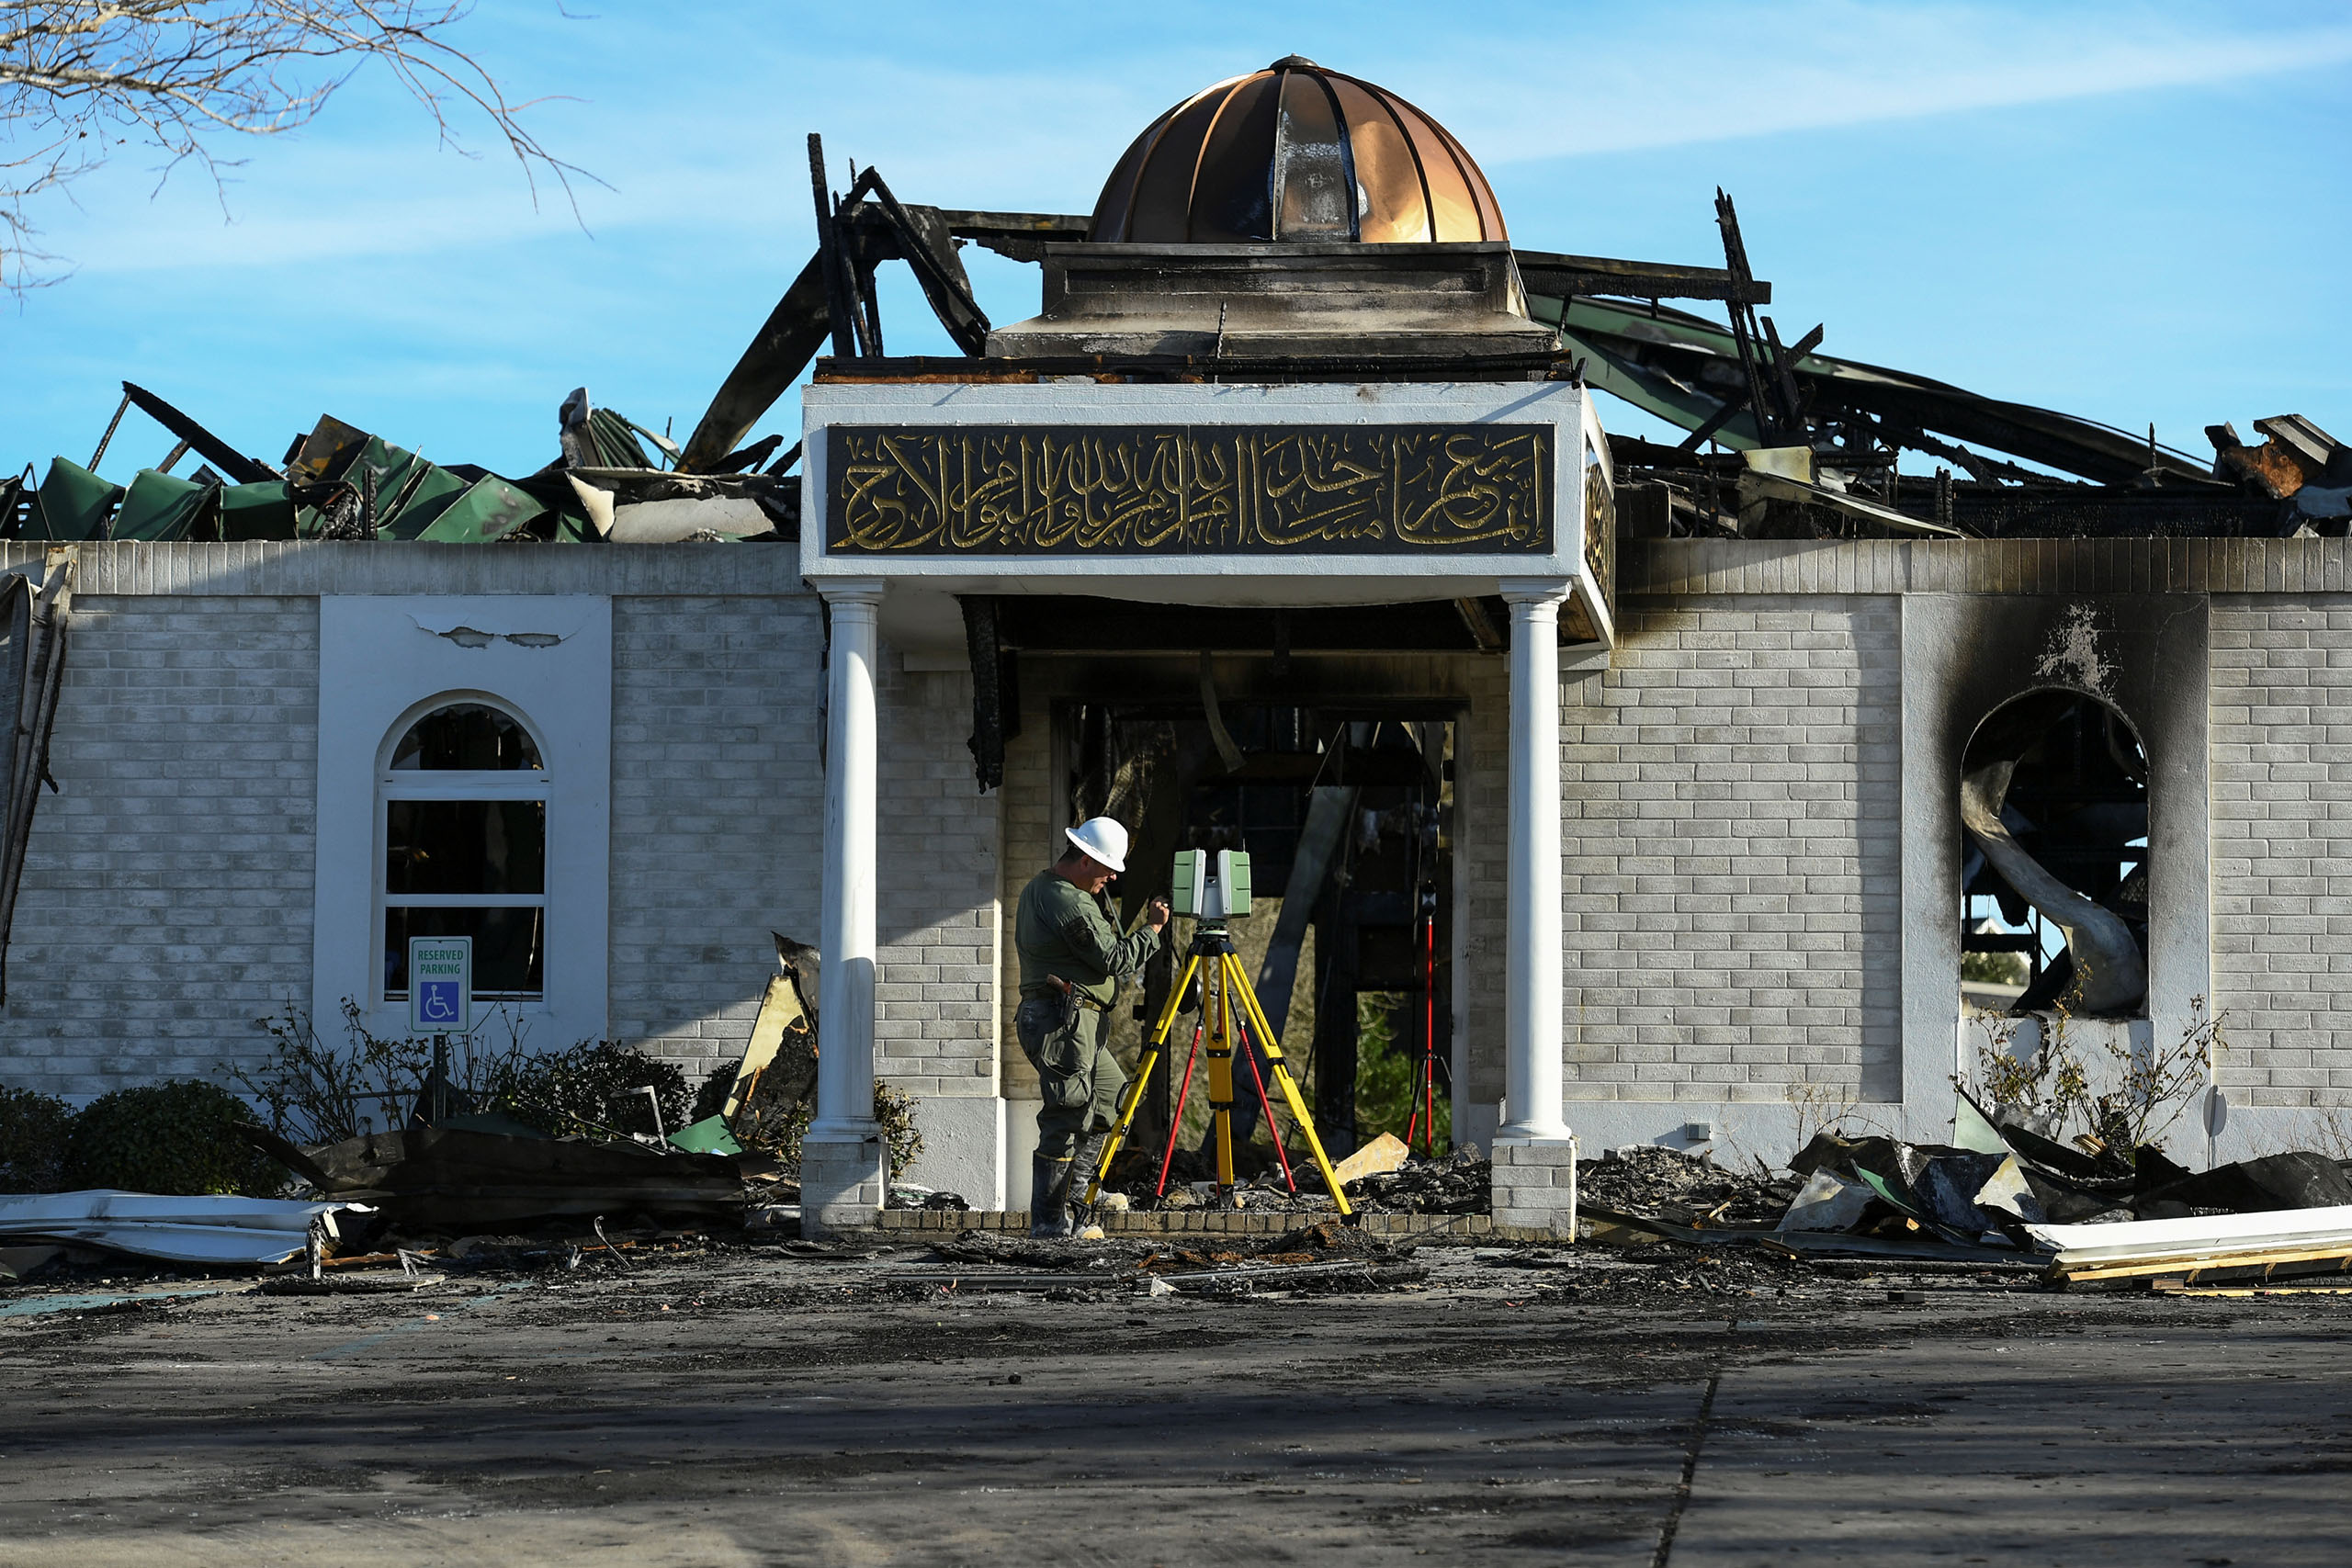 A security official investigates the aftermath of a fire at the Victoria Islamic Center mosque in Victoria, Texas, on Jan. 29, 2017.